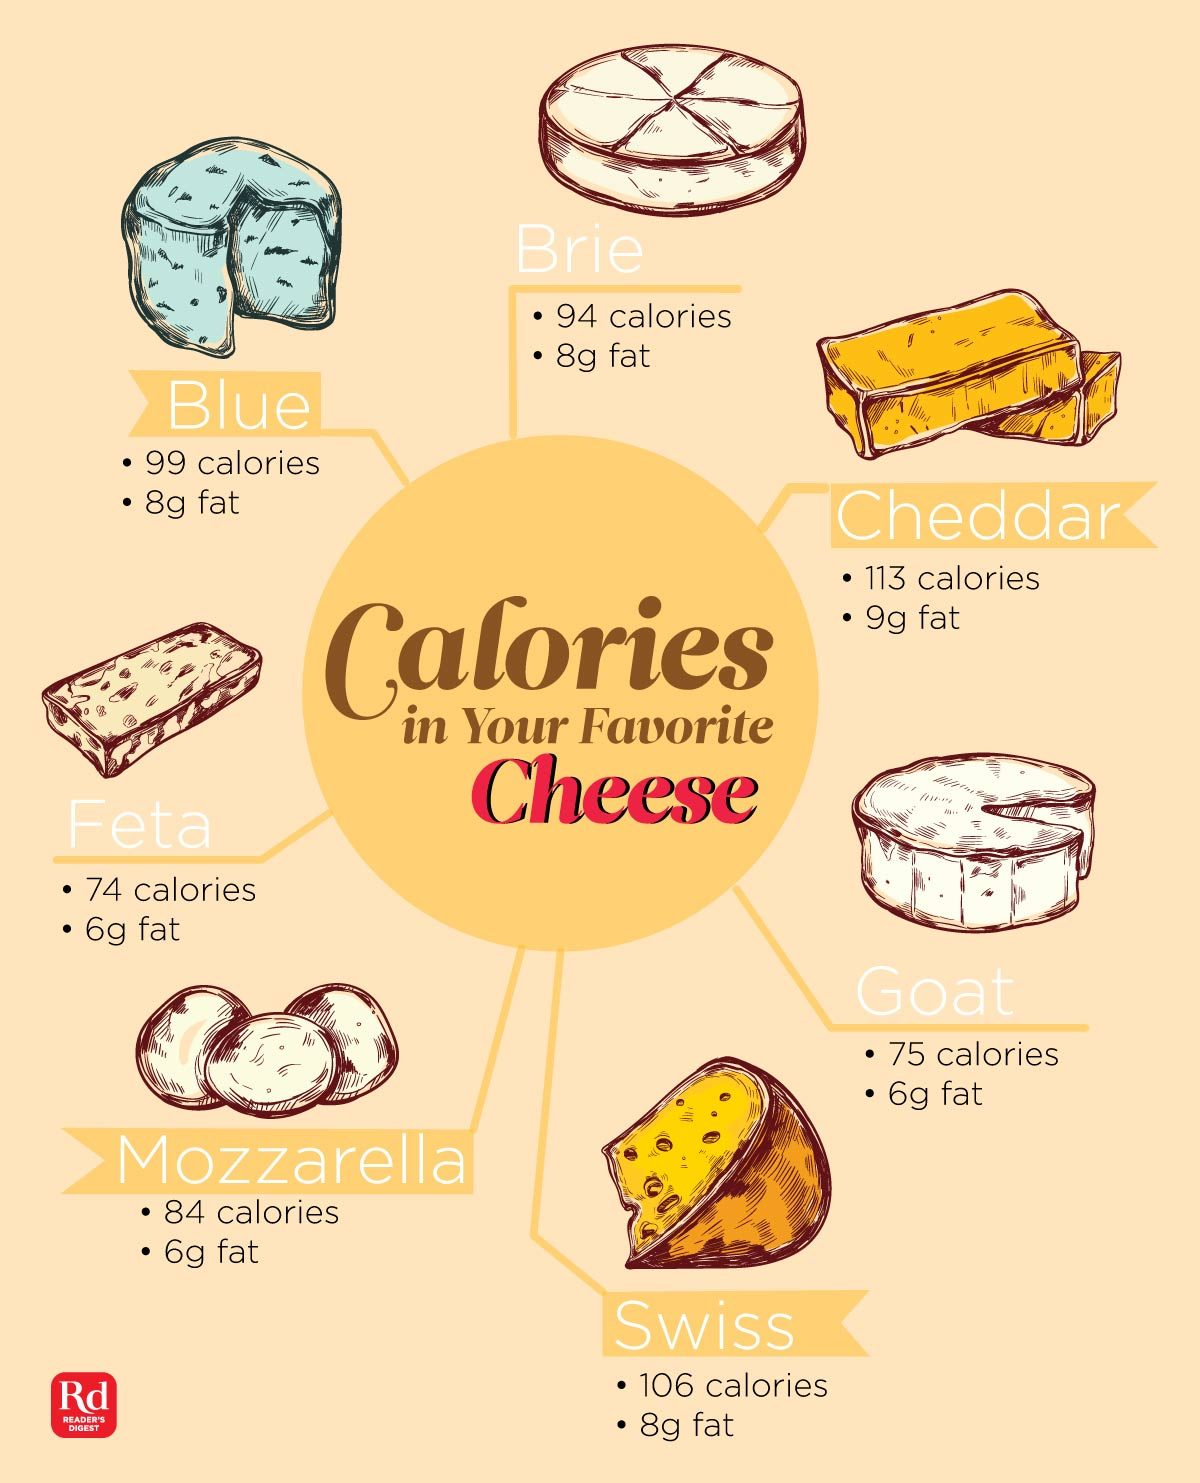 cheese calories - different kinds of cheese